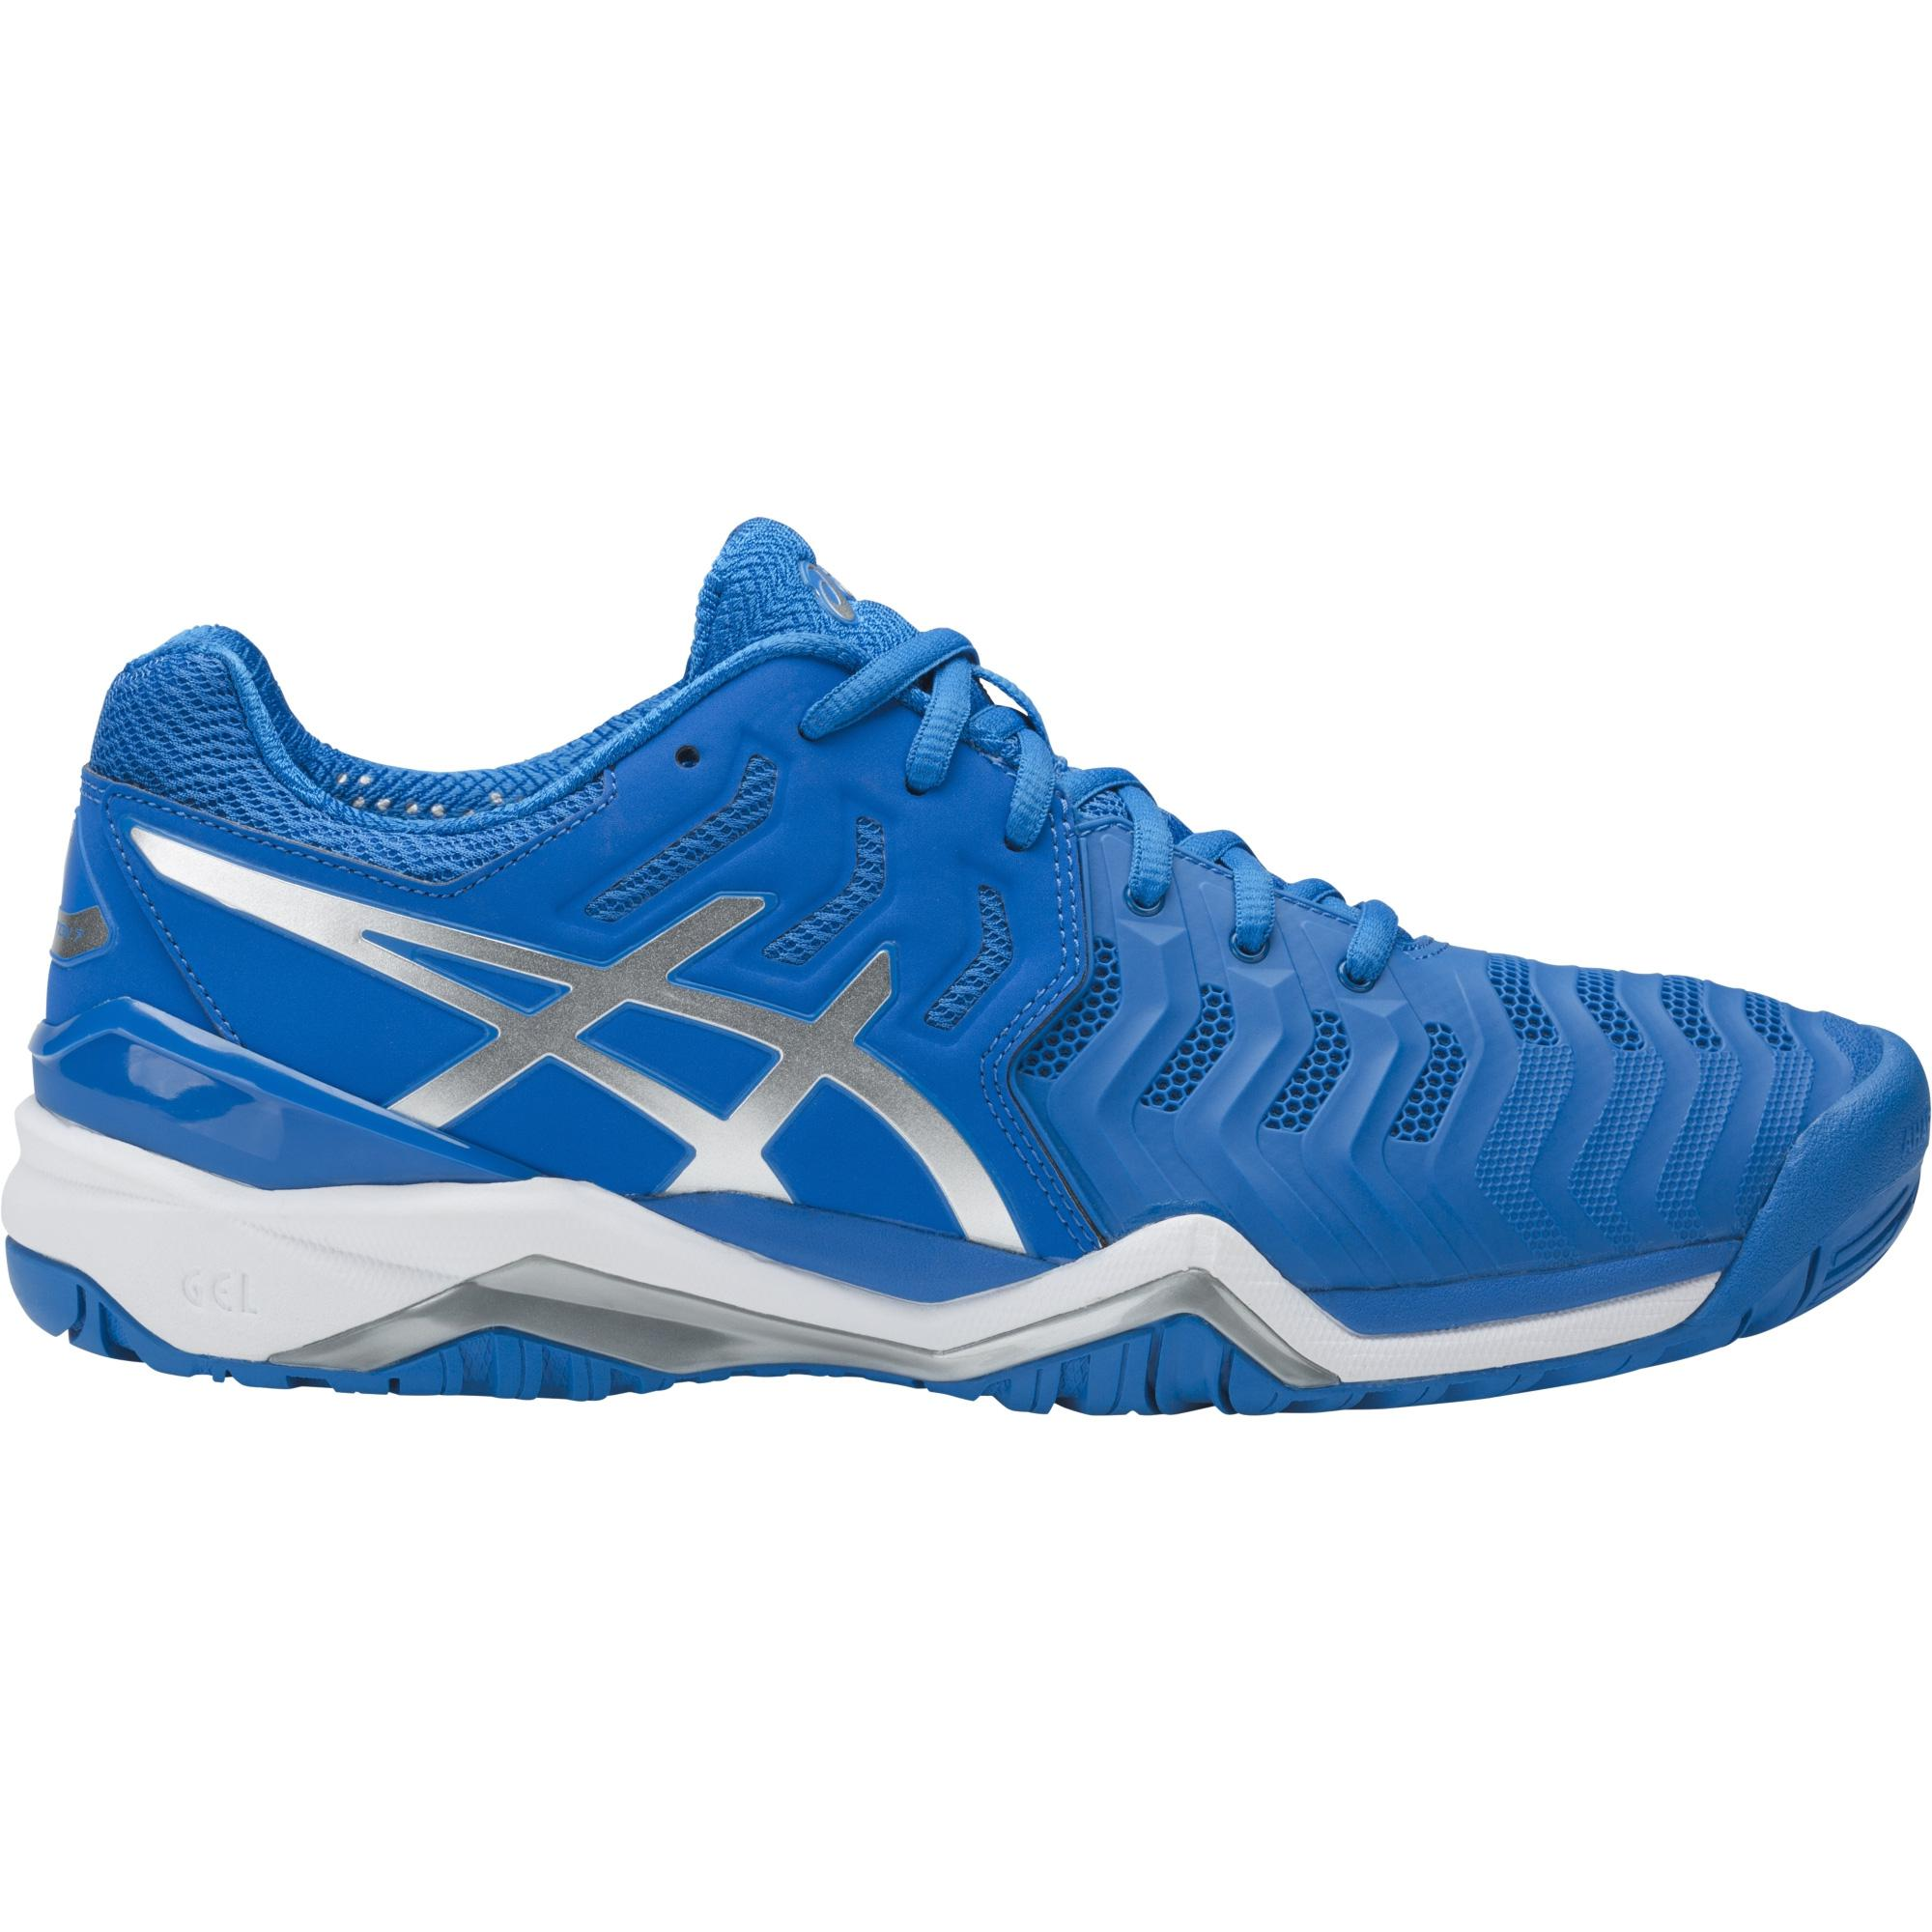 Asics Mens GEL-Resolution 7 Tennis Shoes - Blue